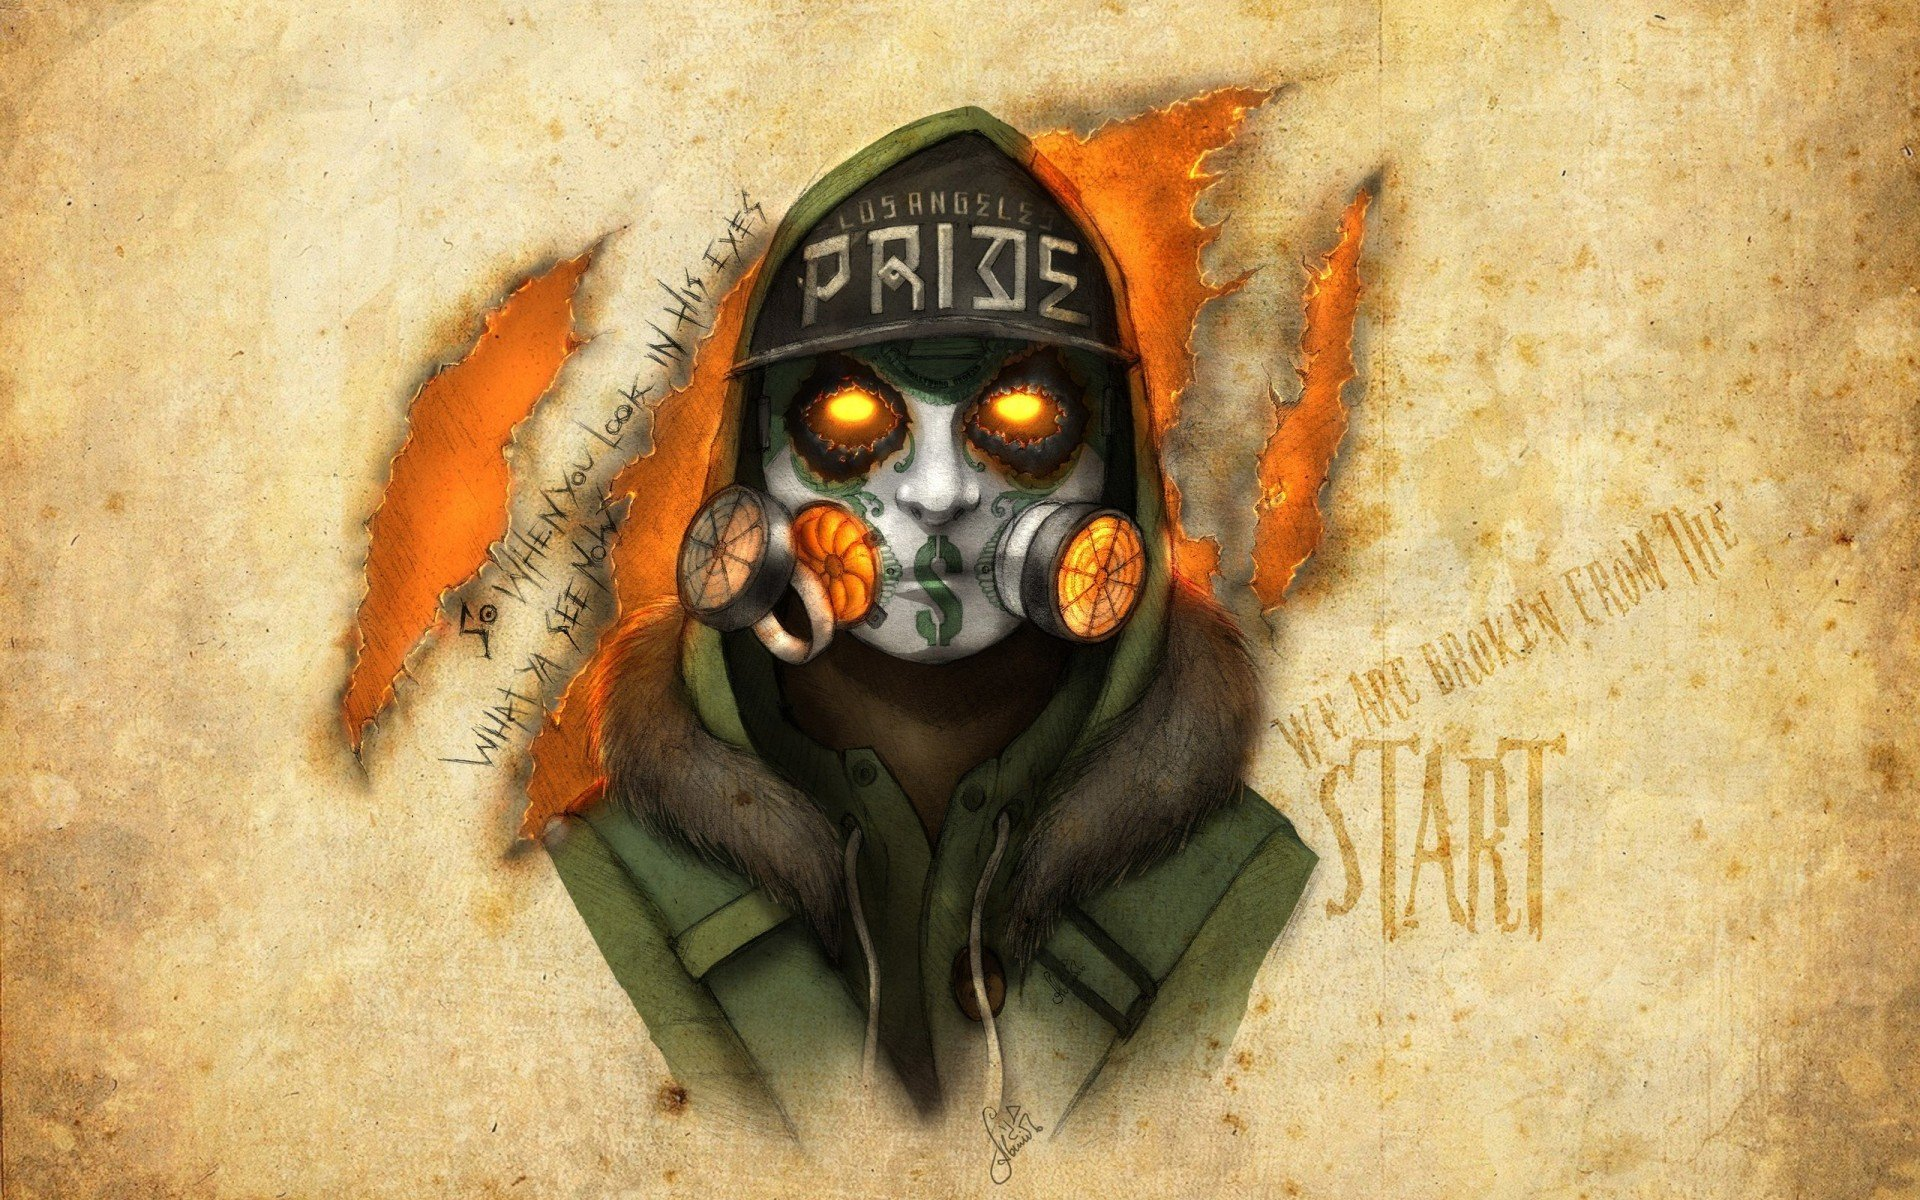 notes from the underground, j-dog, hollywood undead, artwork